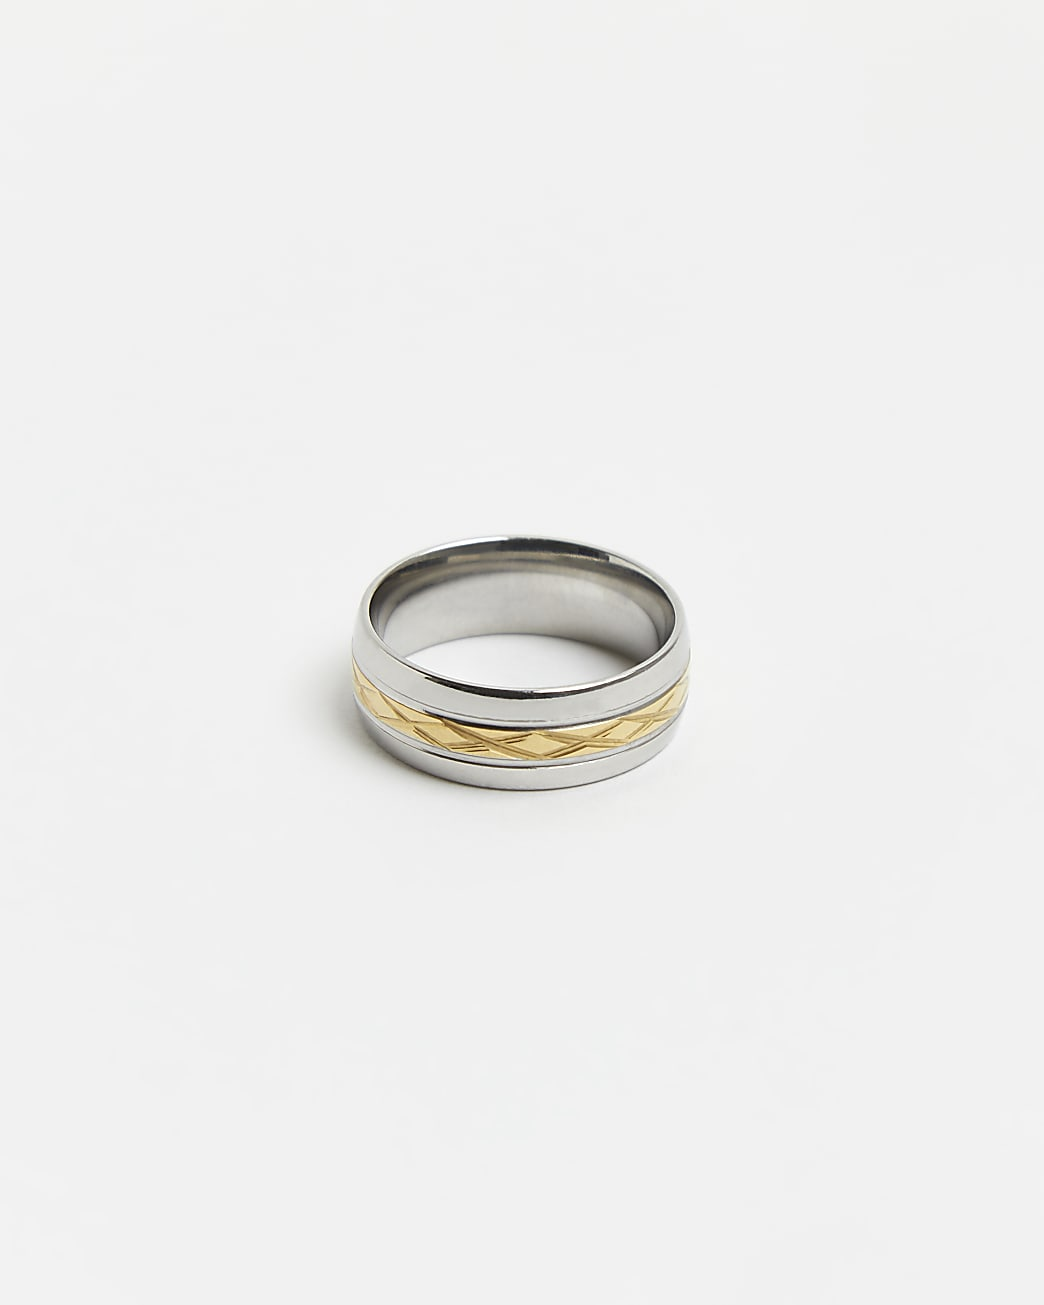 Silver & gold stainless steel band ring